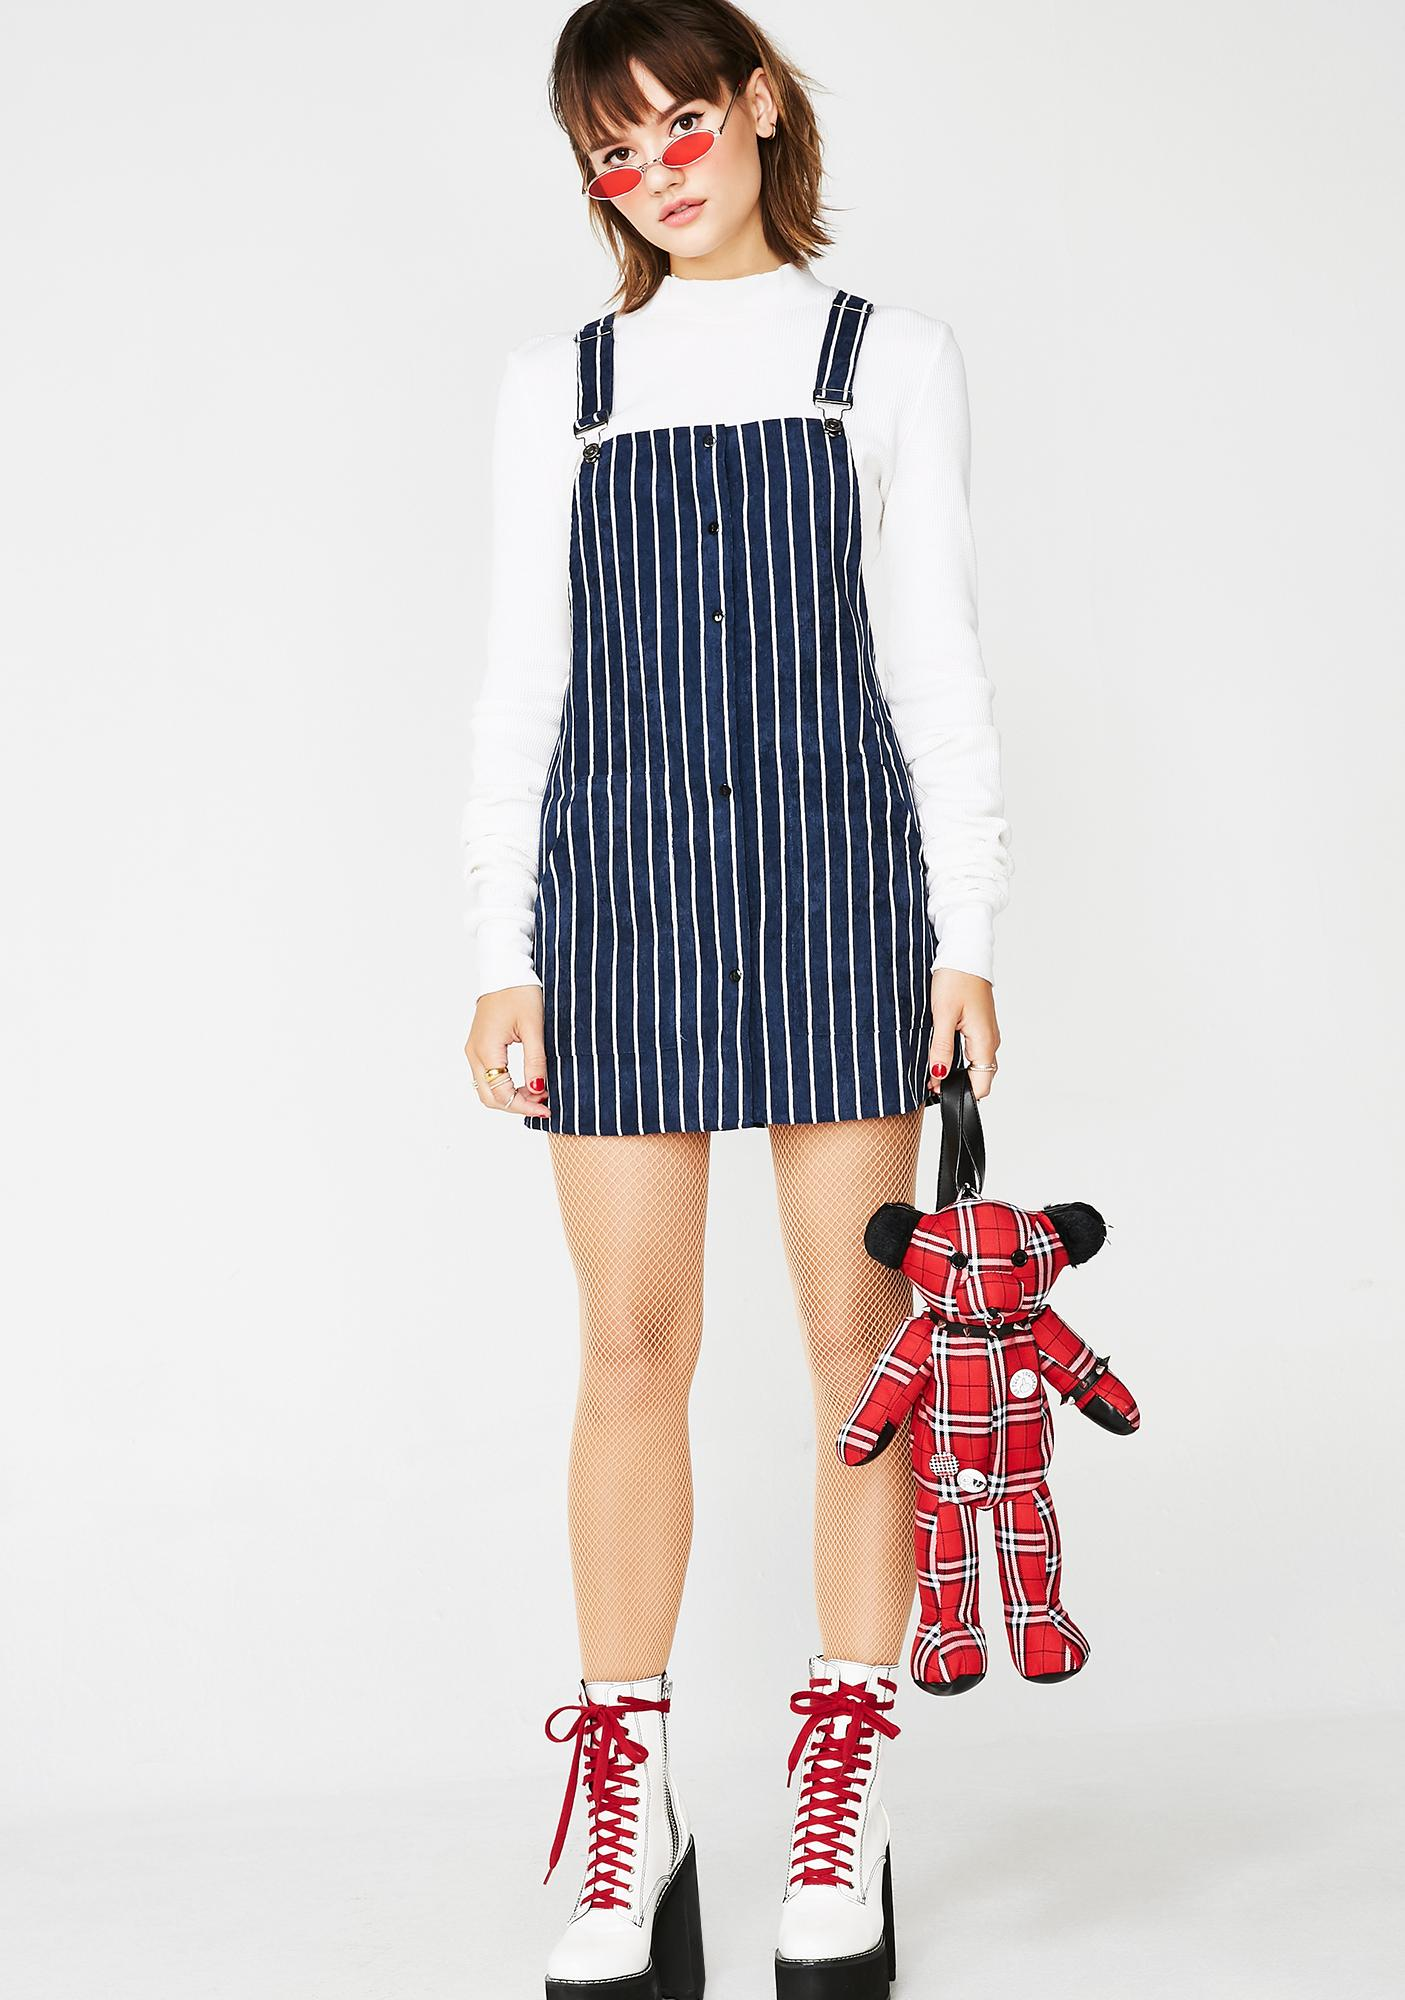 Off The Rails Overall Dress